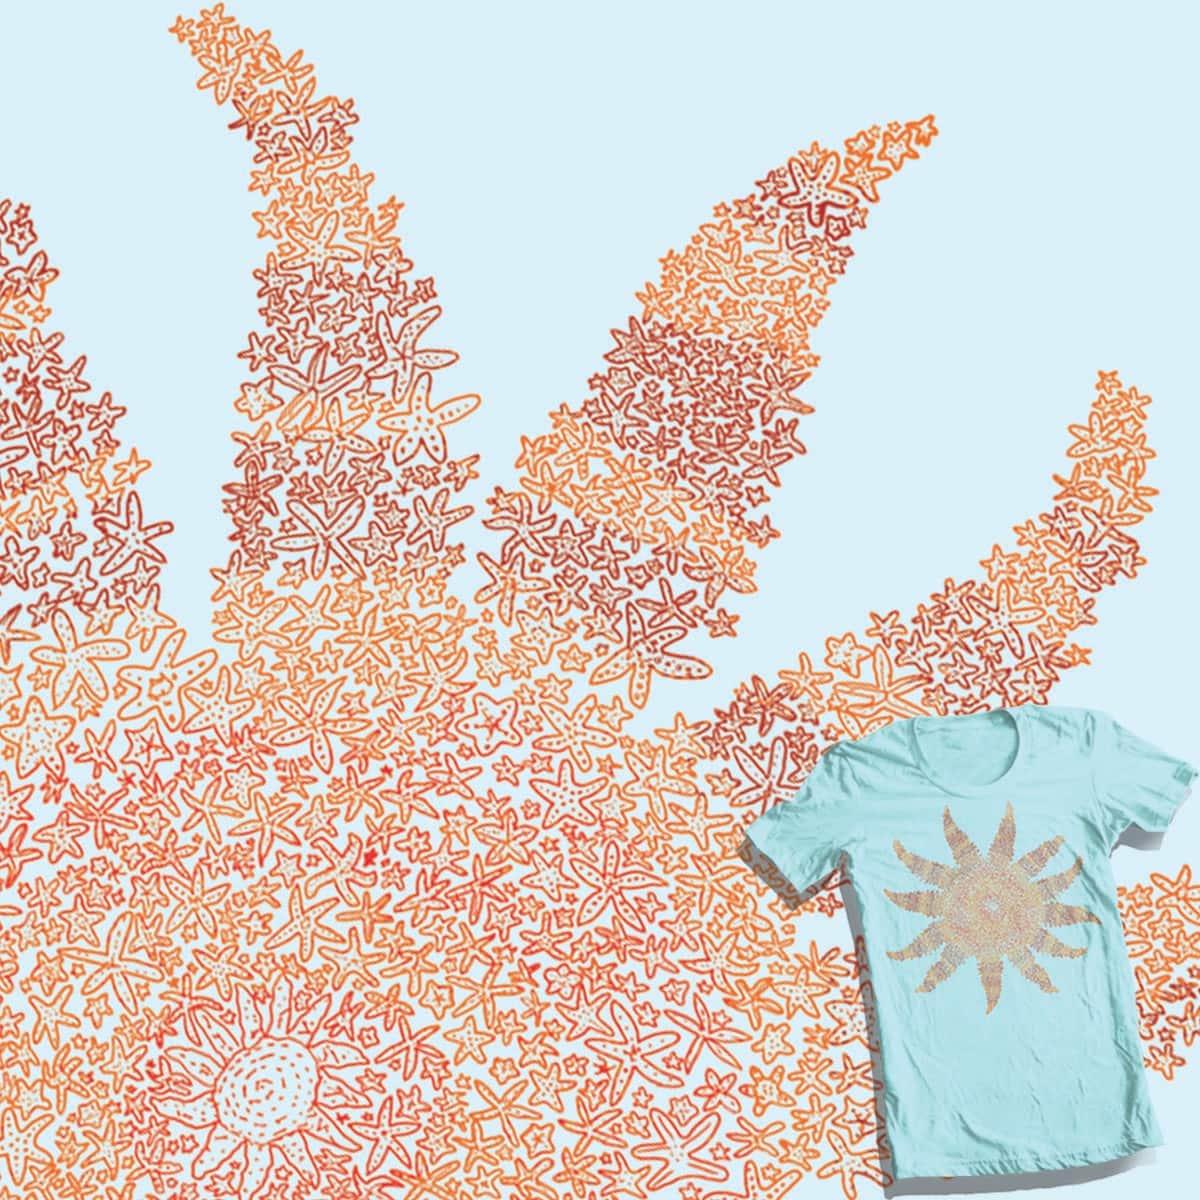 Sunstar by jackbounces on Threadless